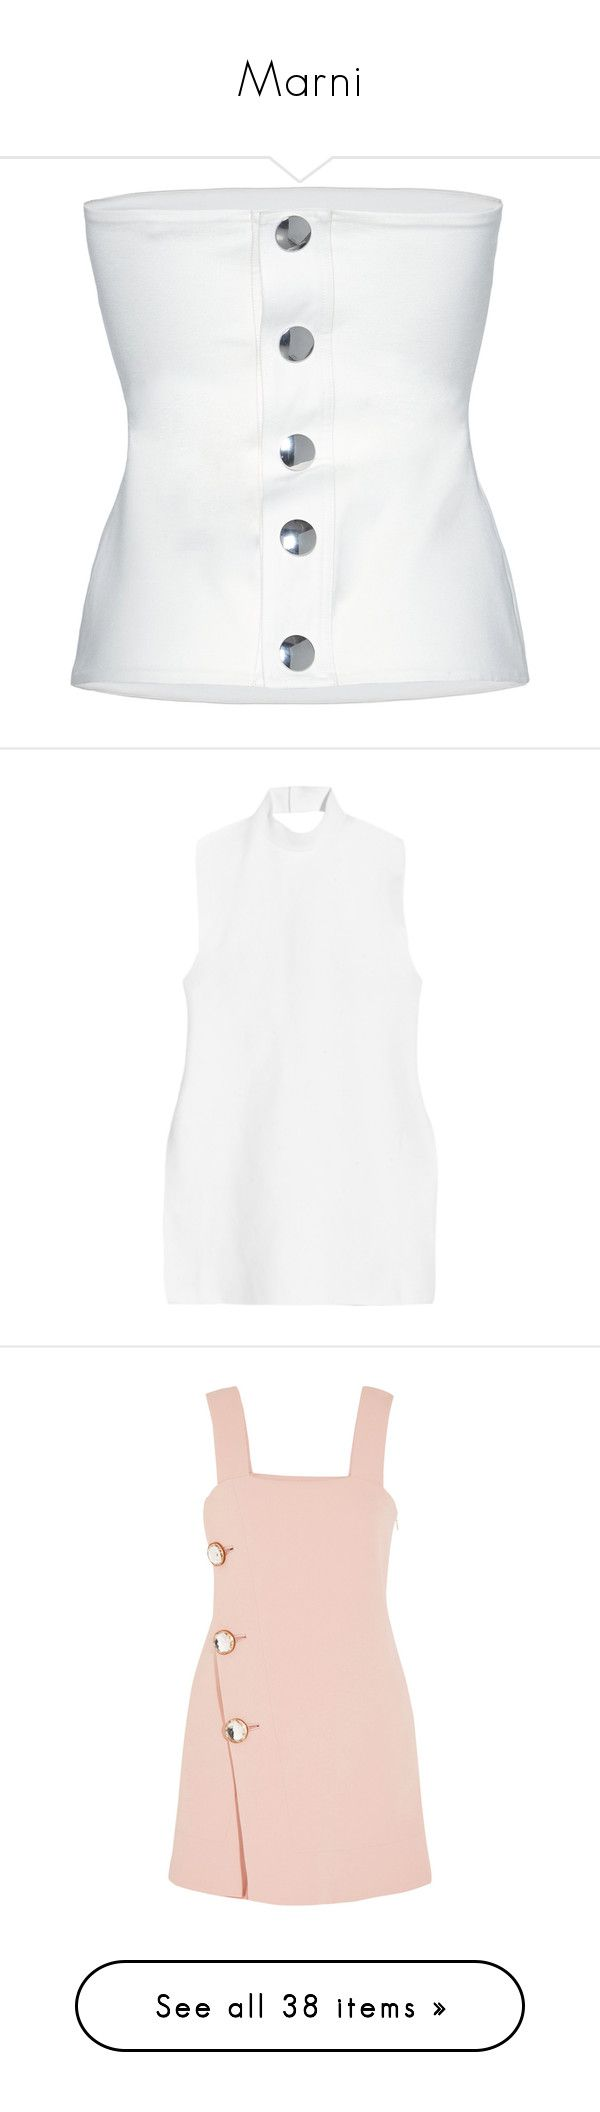 """Marni"" by z-zzz ❤ liked on Polyvore featuring tops, white bandeau top, silver top, bandeau tops, form fitting tops, marni, tunics, white, cotton jersey and white tops"